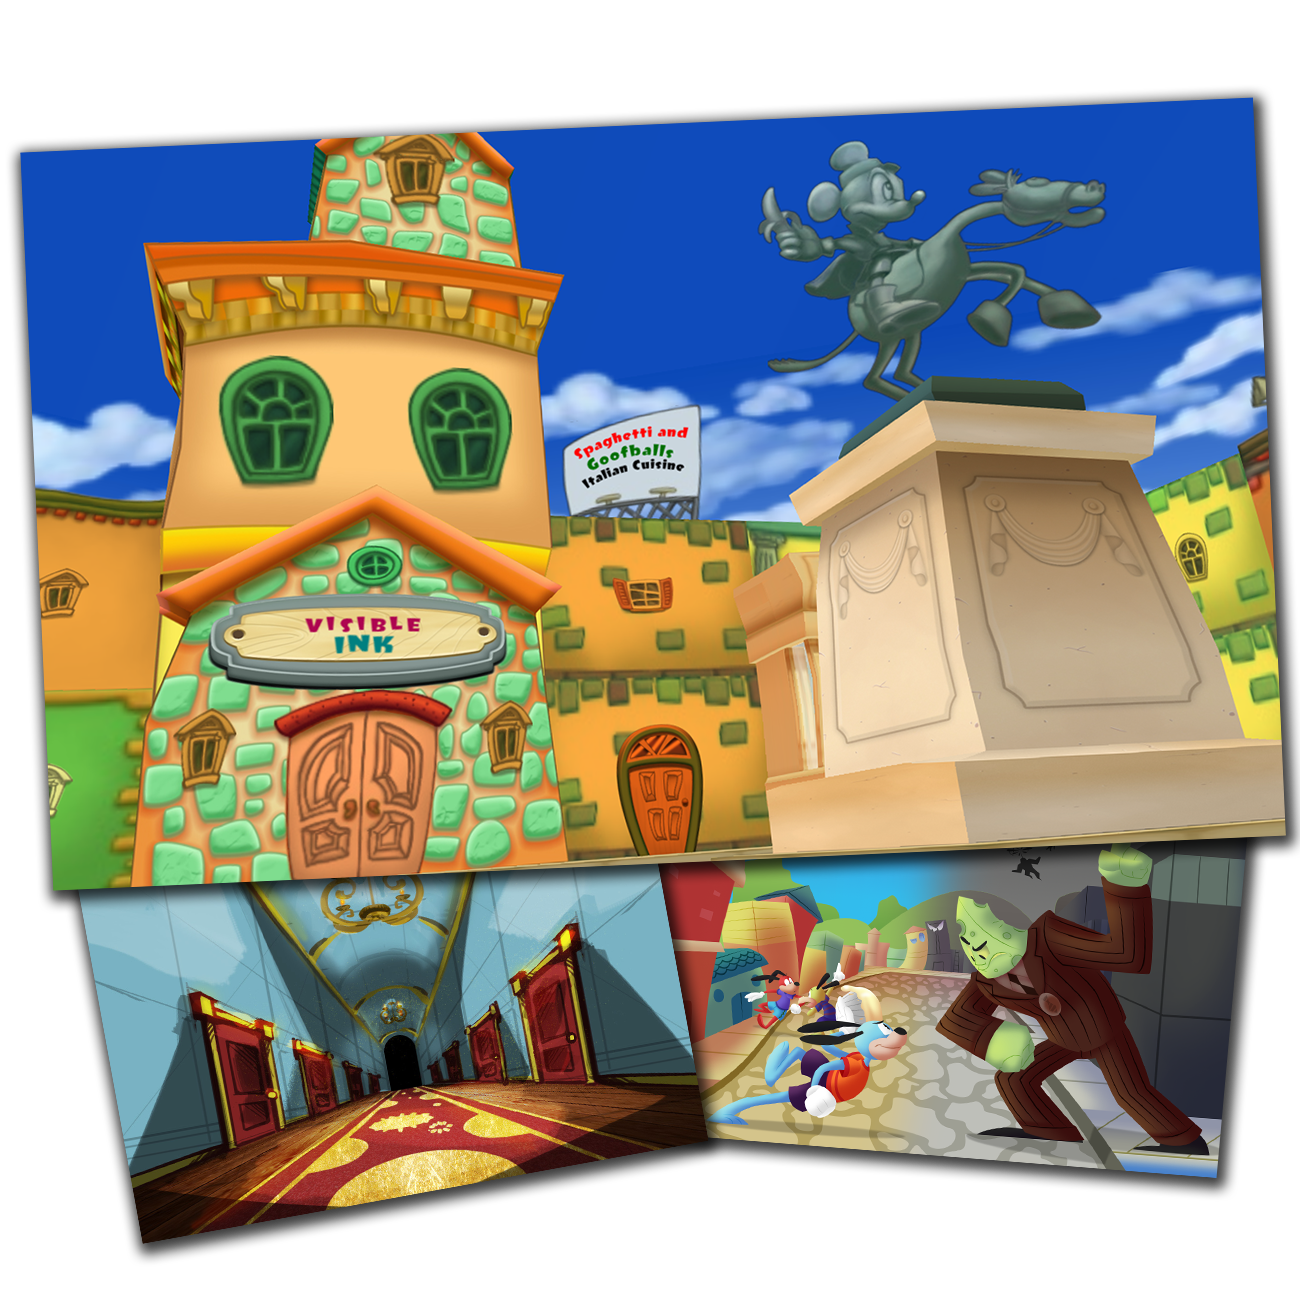 Backstage: Tweaks to Toontown | Toontown Rewritten